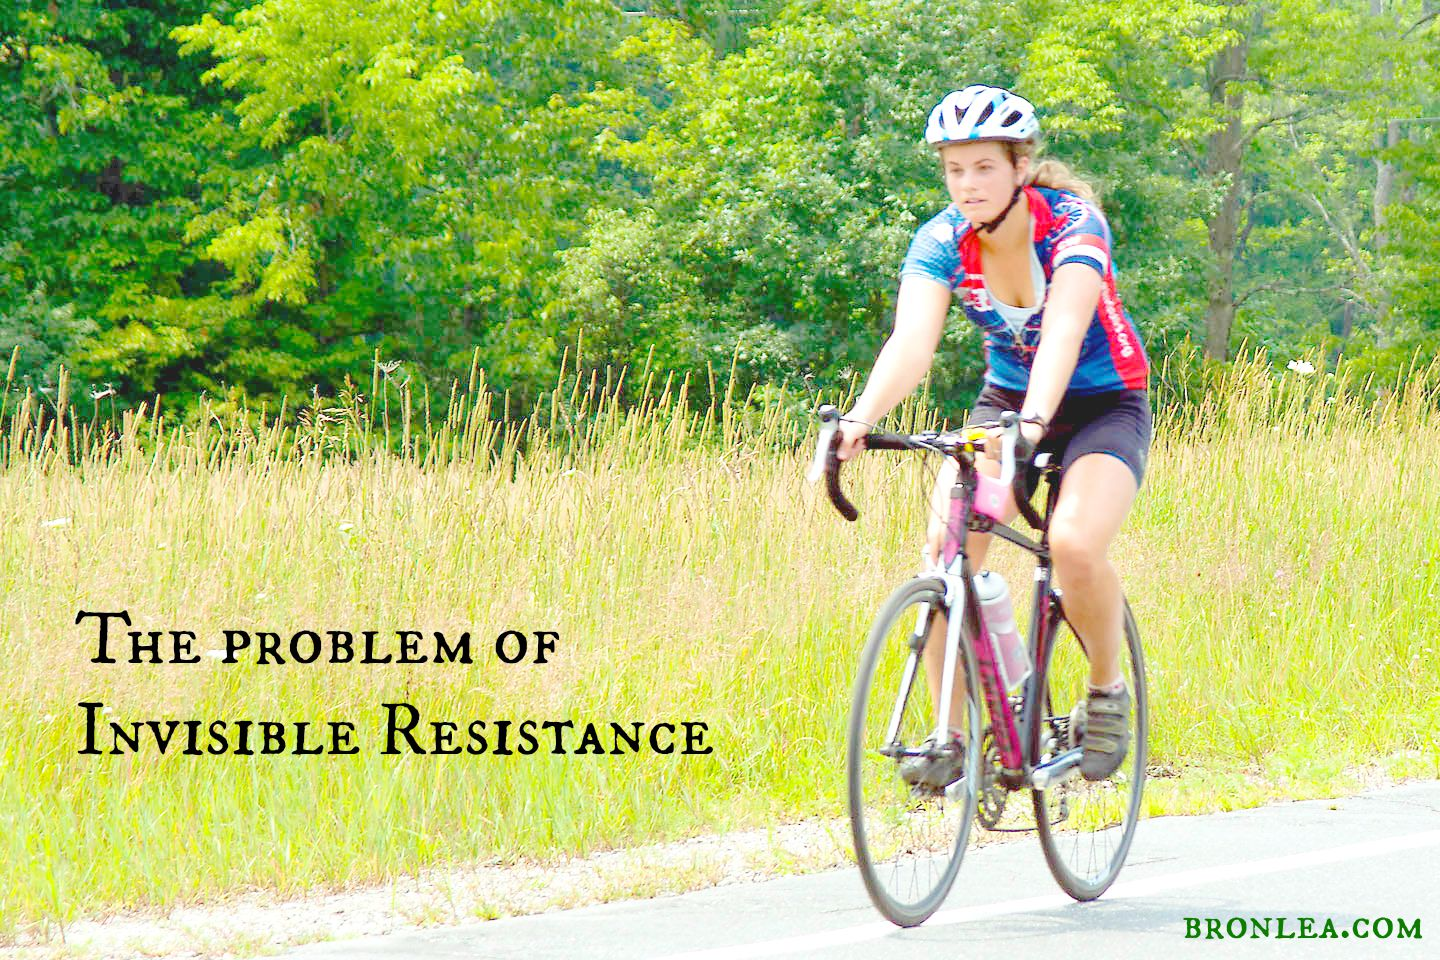 The Problem of Invisible Resistance